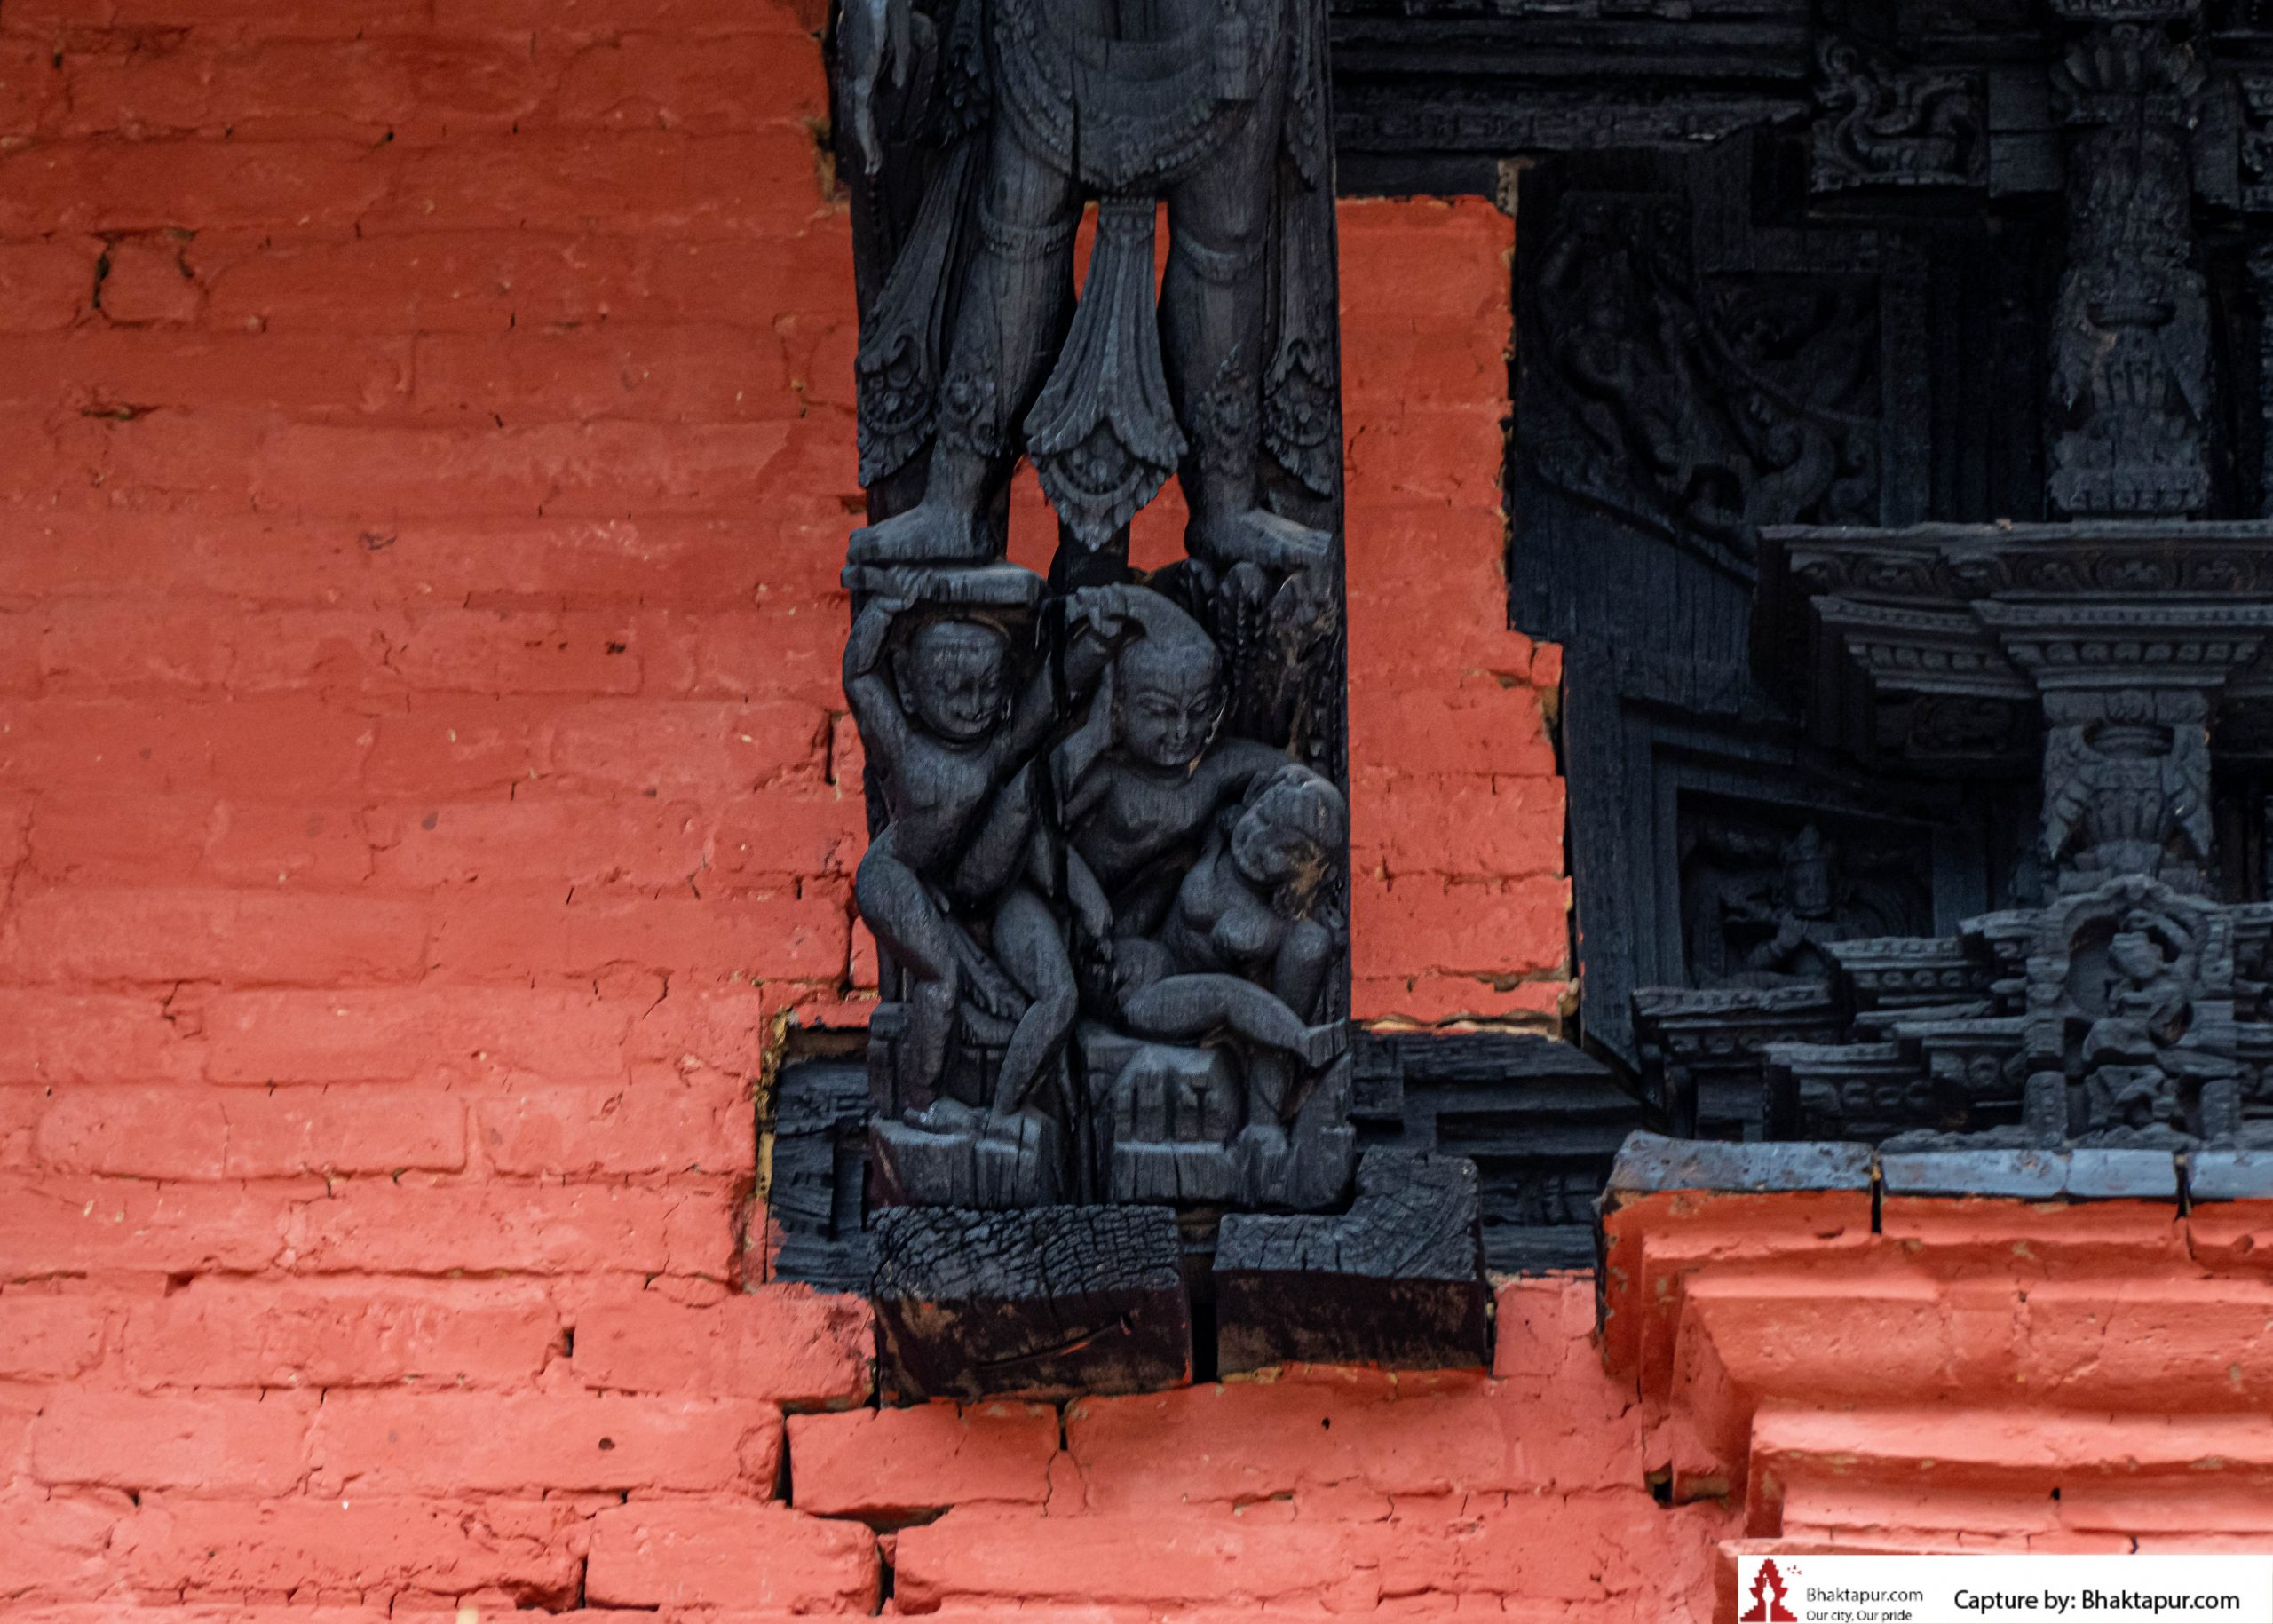 https://www.bhaktapur.com/wp-content/uploads/2021/08/erotic-carving-77-of-137-scaled.jpg